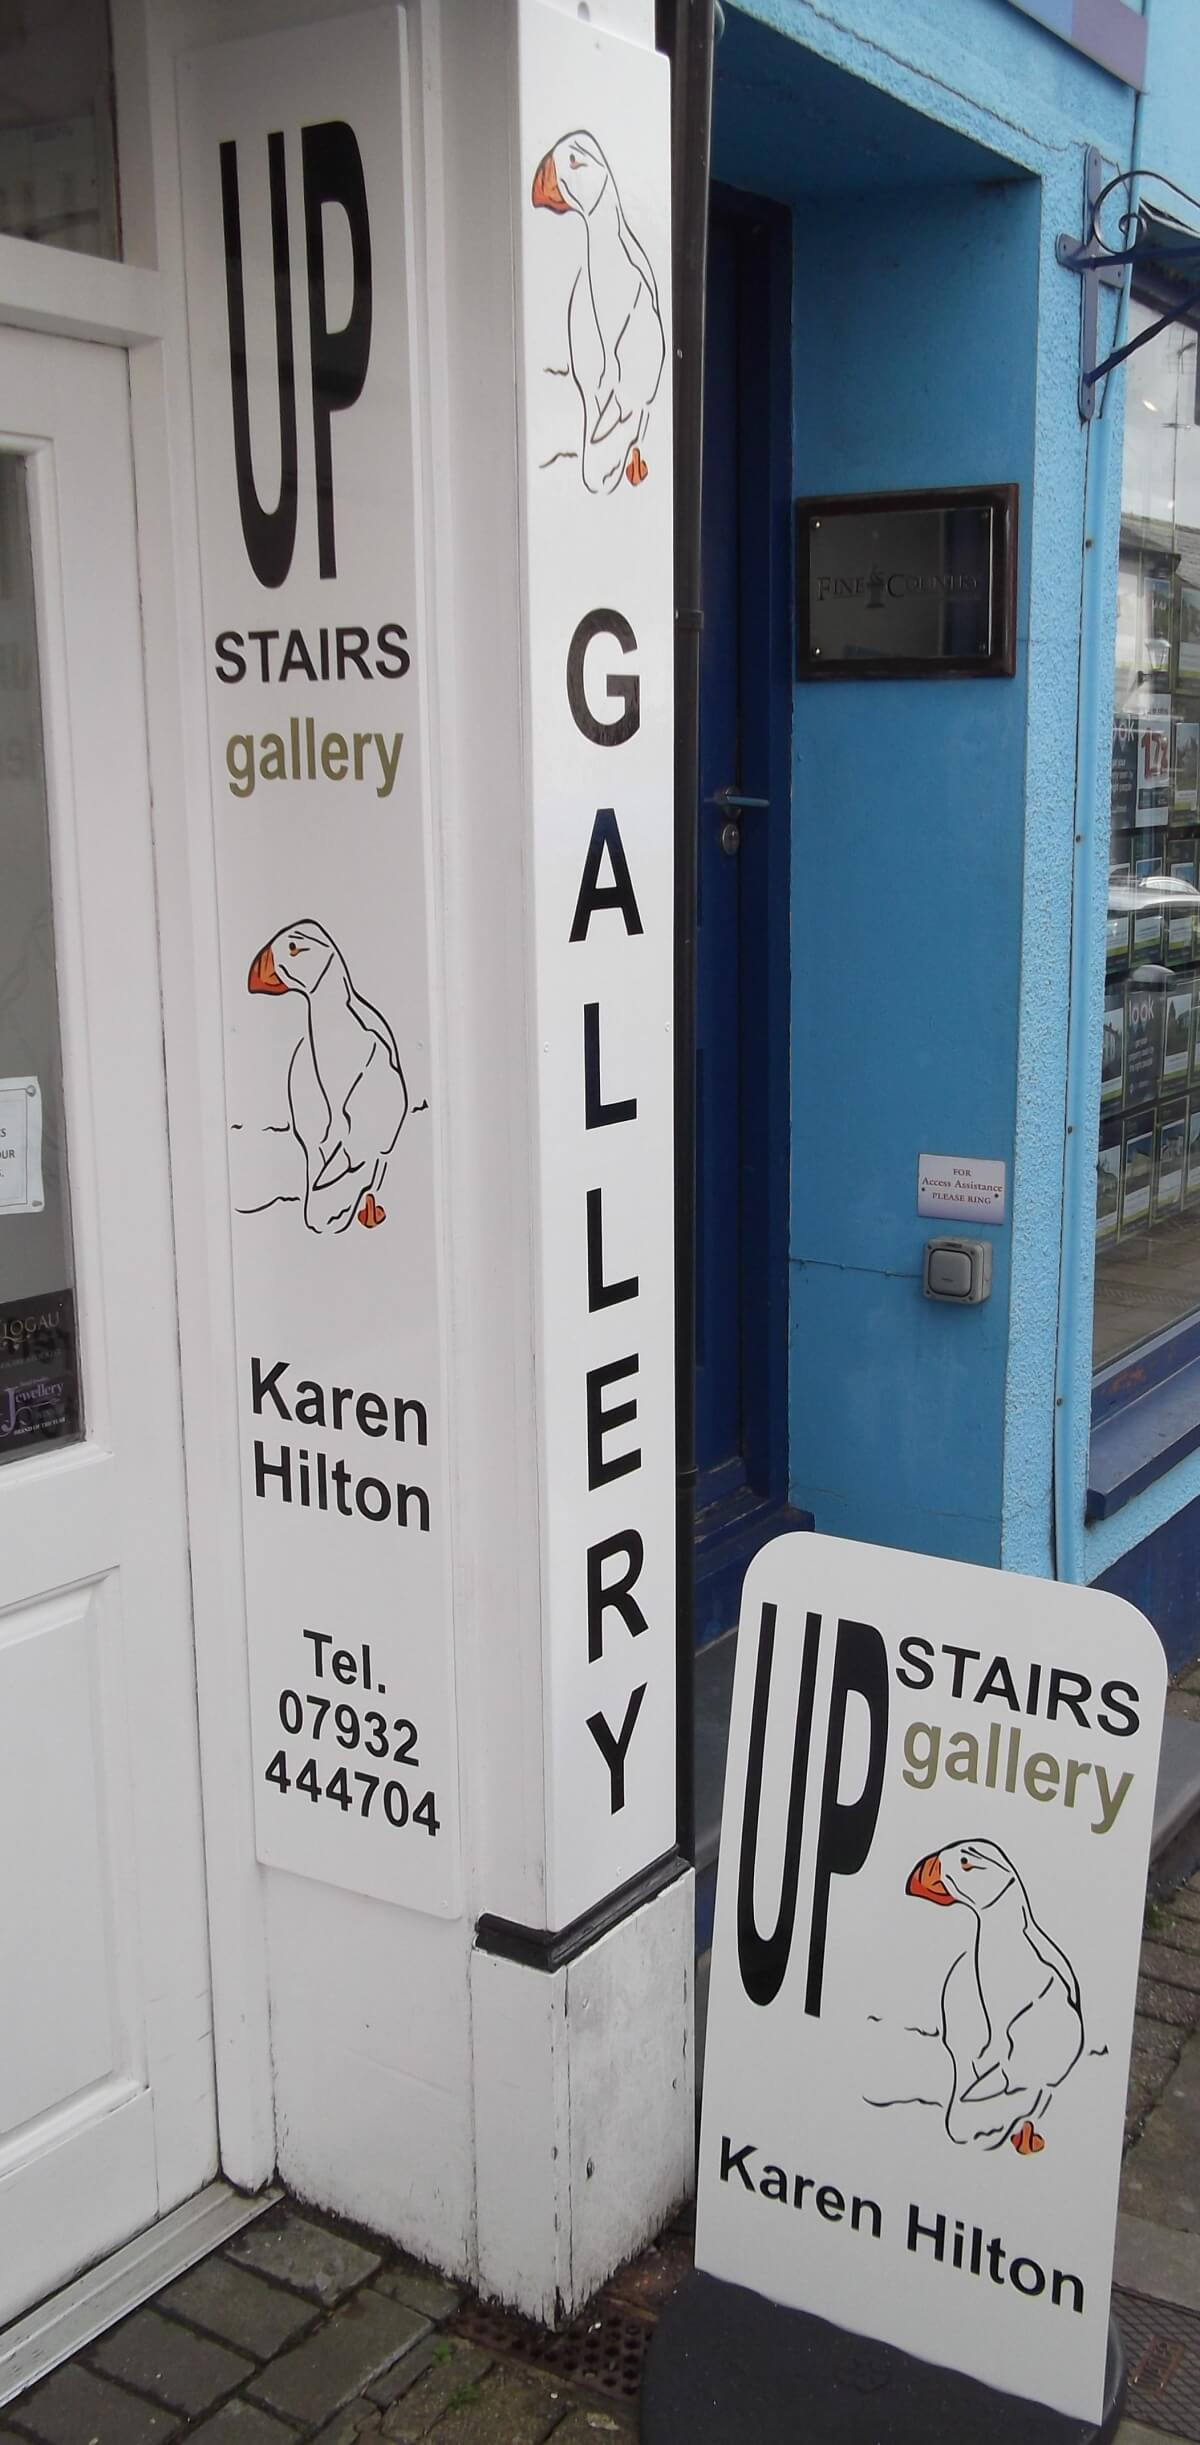 Narberth Signs for Up Stairs Gallery